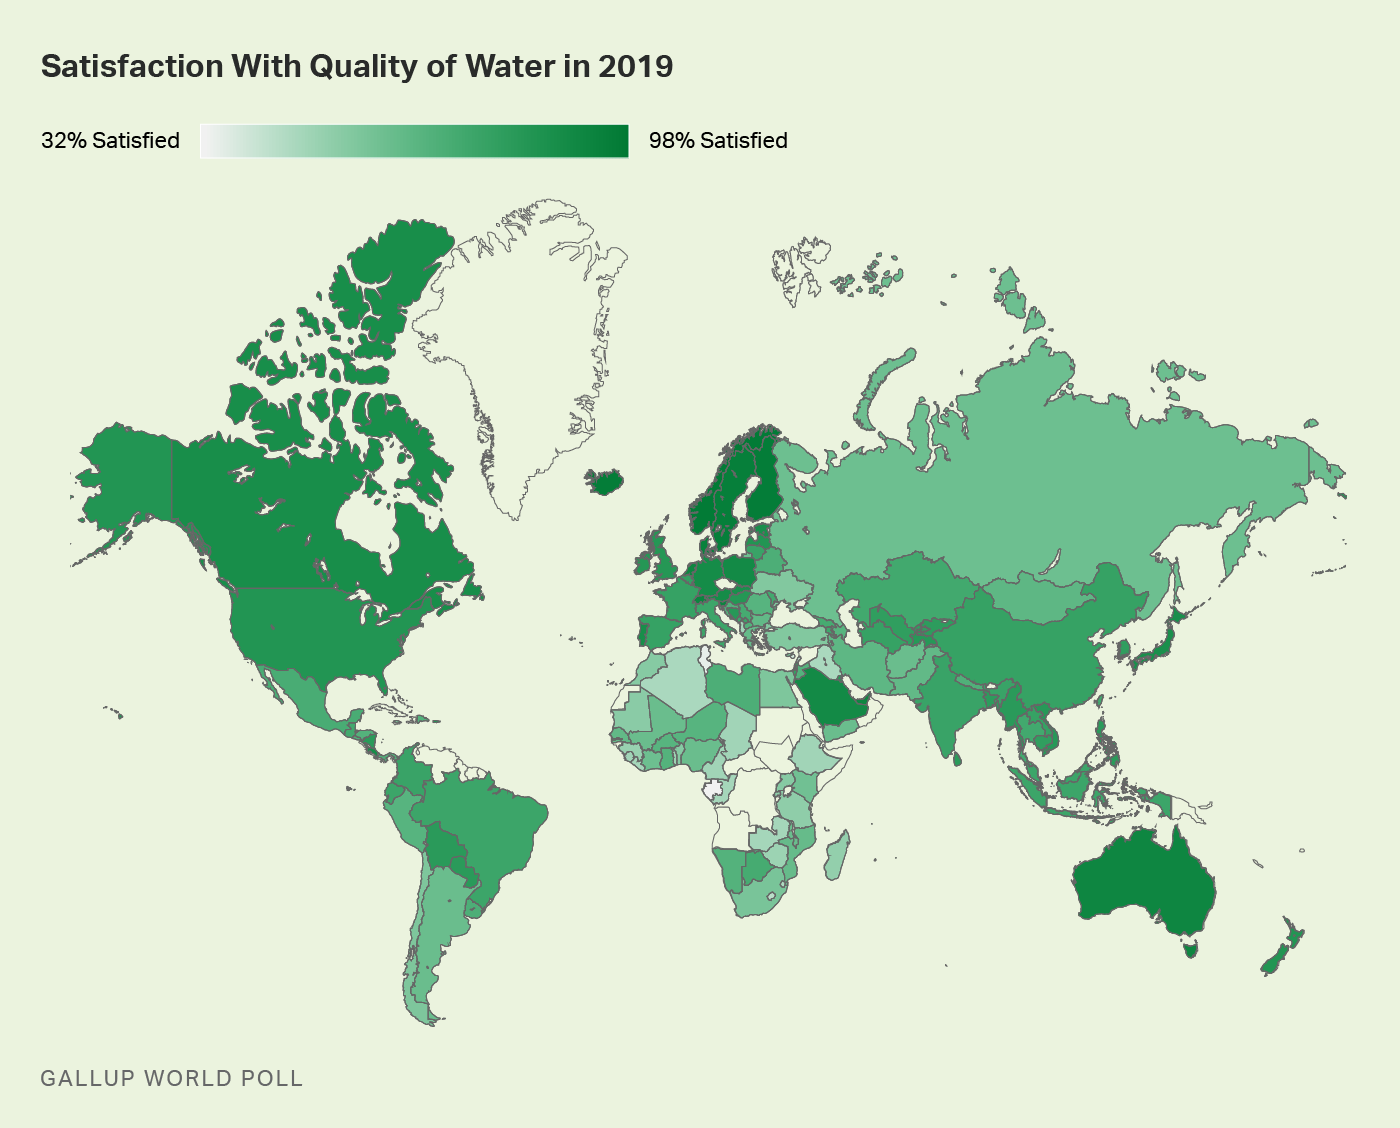 Worldwide satisfaction with water quality.